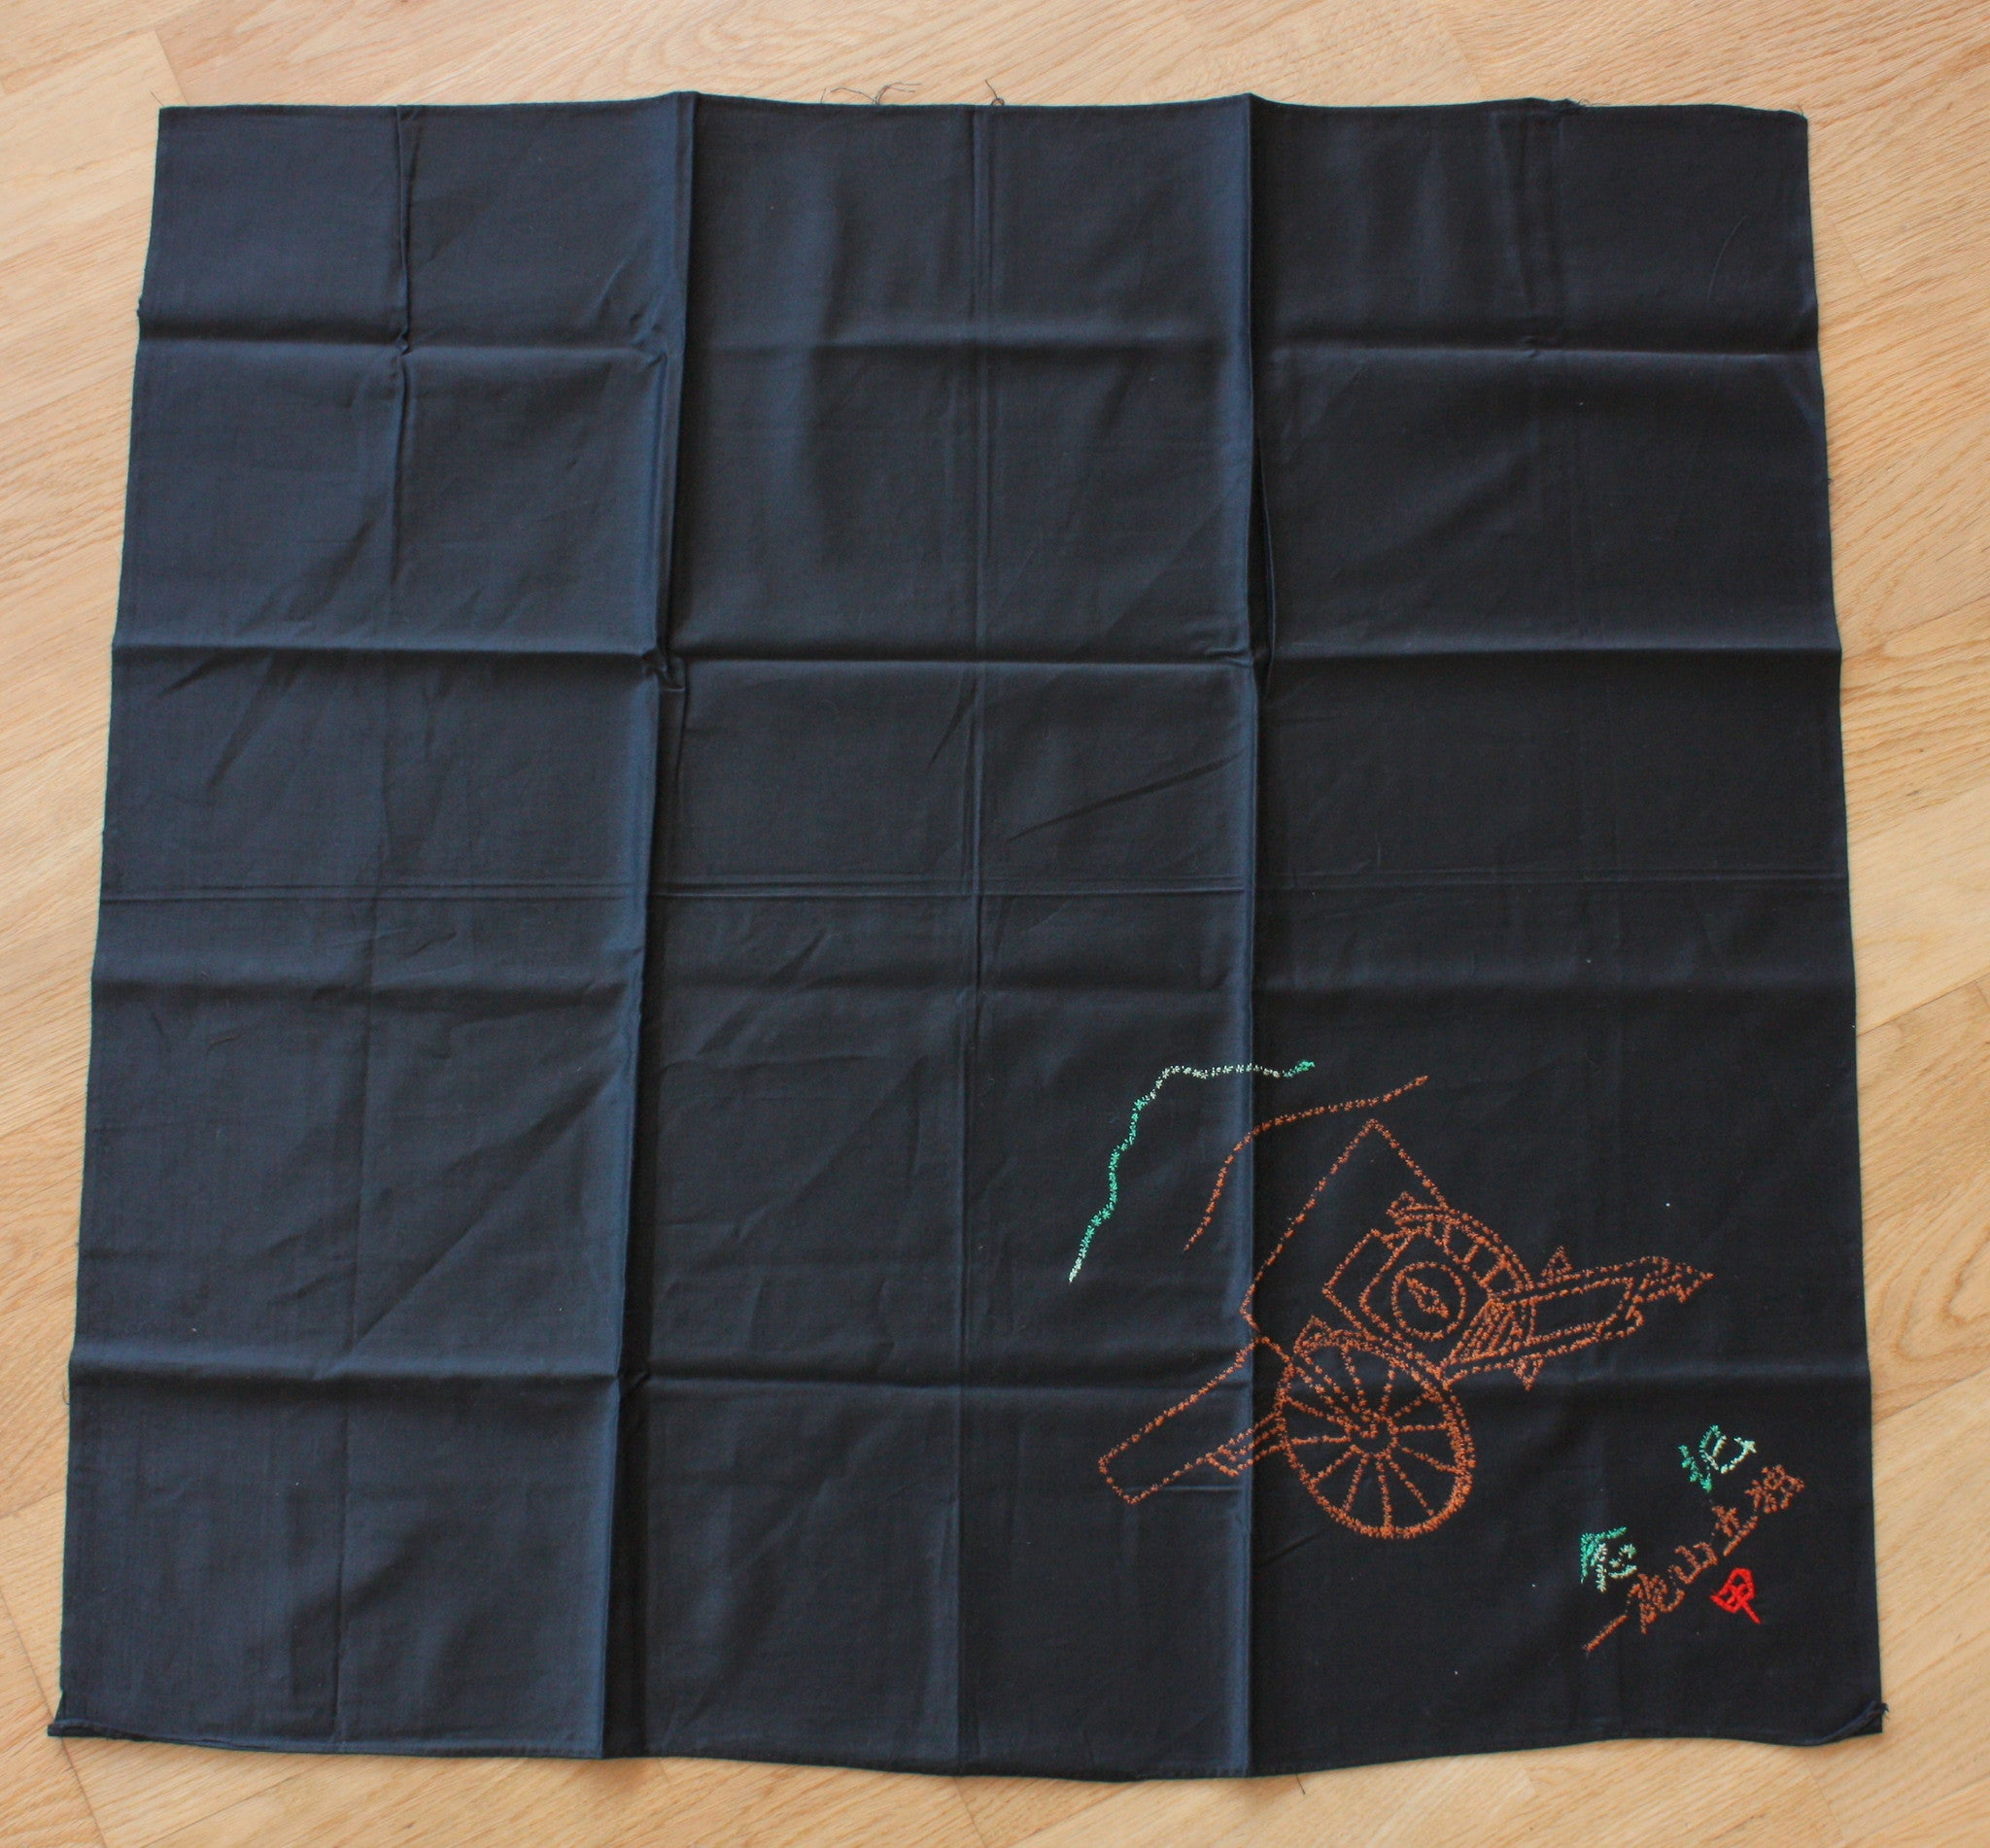 Antique Japanese Military 1st Mountain Artillery Hand Stitched Furoshiki Wrapping Cloth